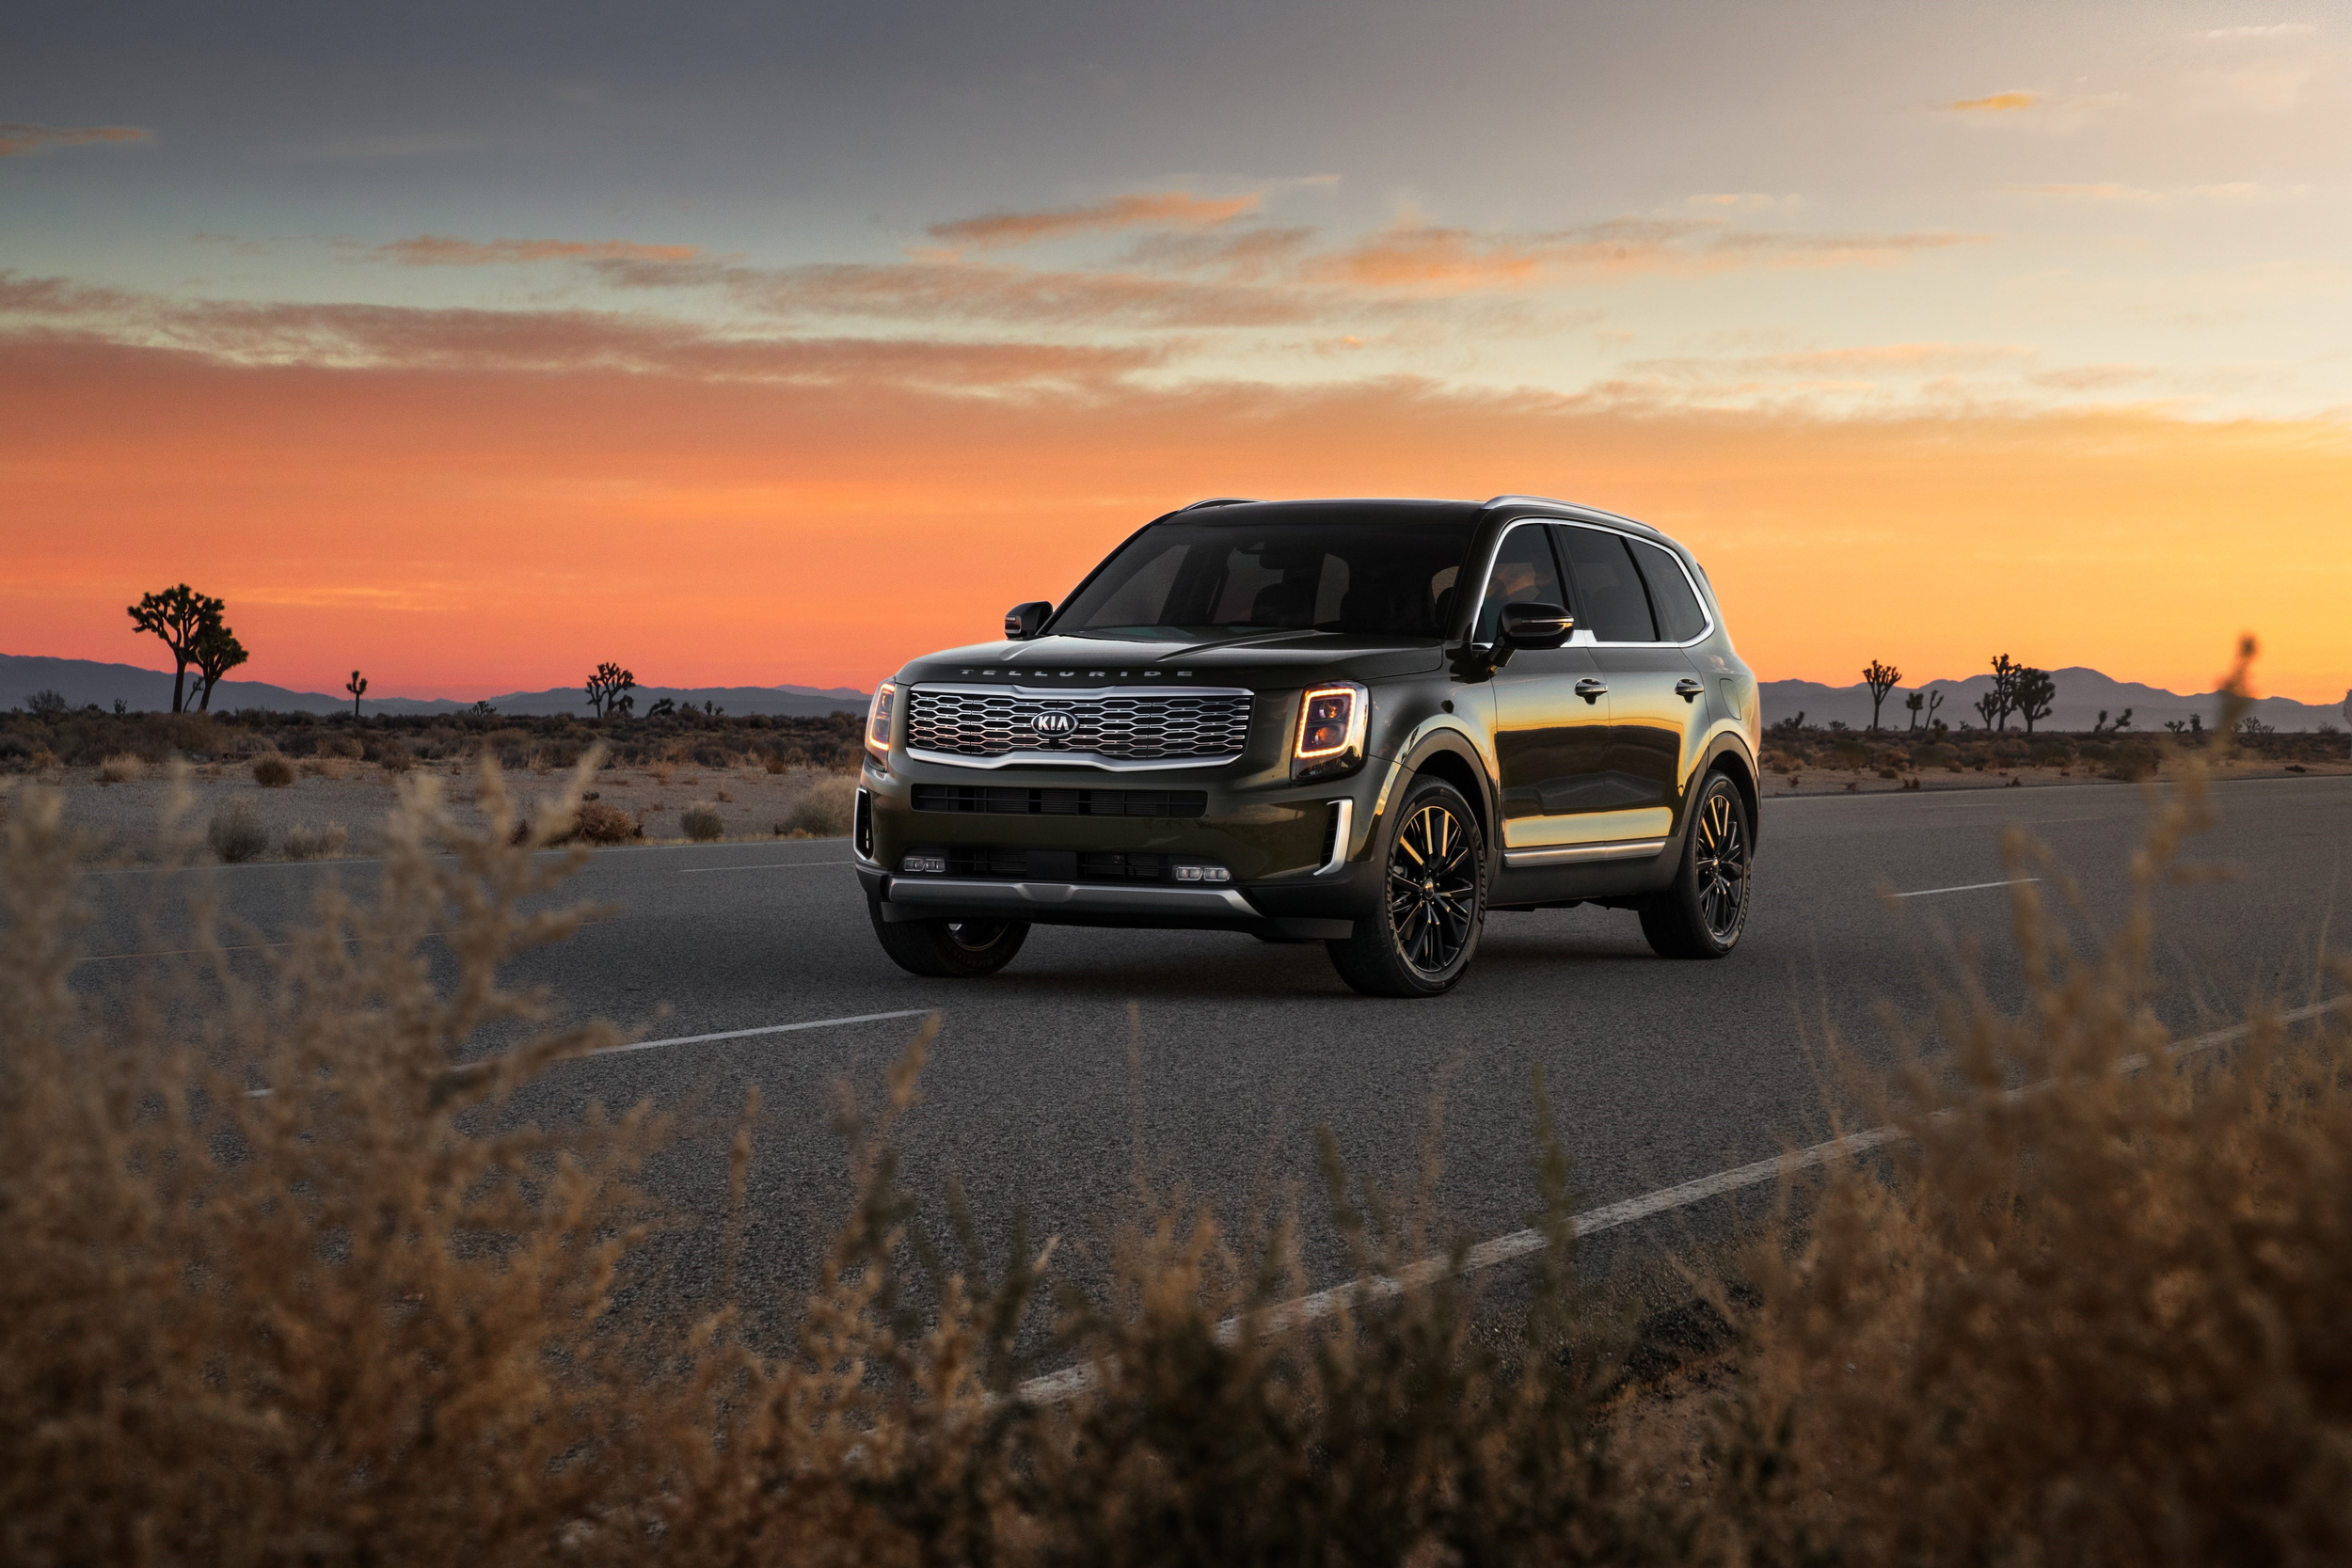 The 2020 Kia Telluride is Kia's push into the Luxury SUV market at a very reasonable price…Click the photo to learn more.